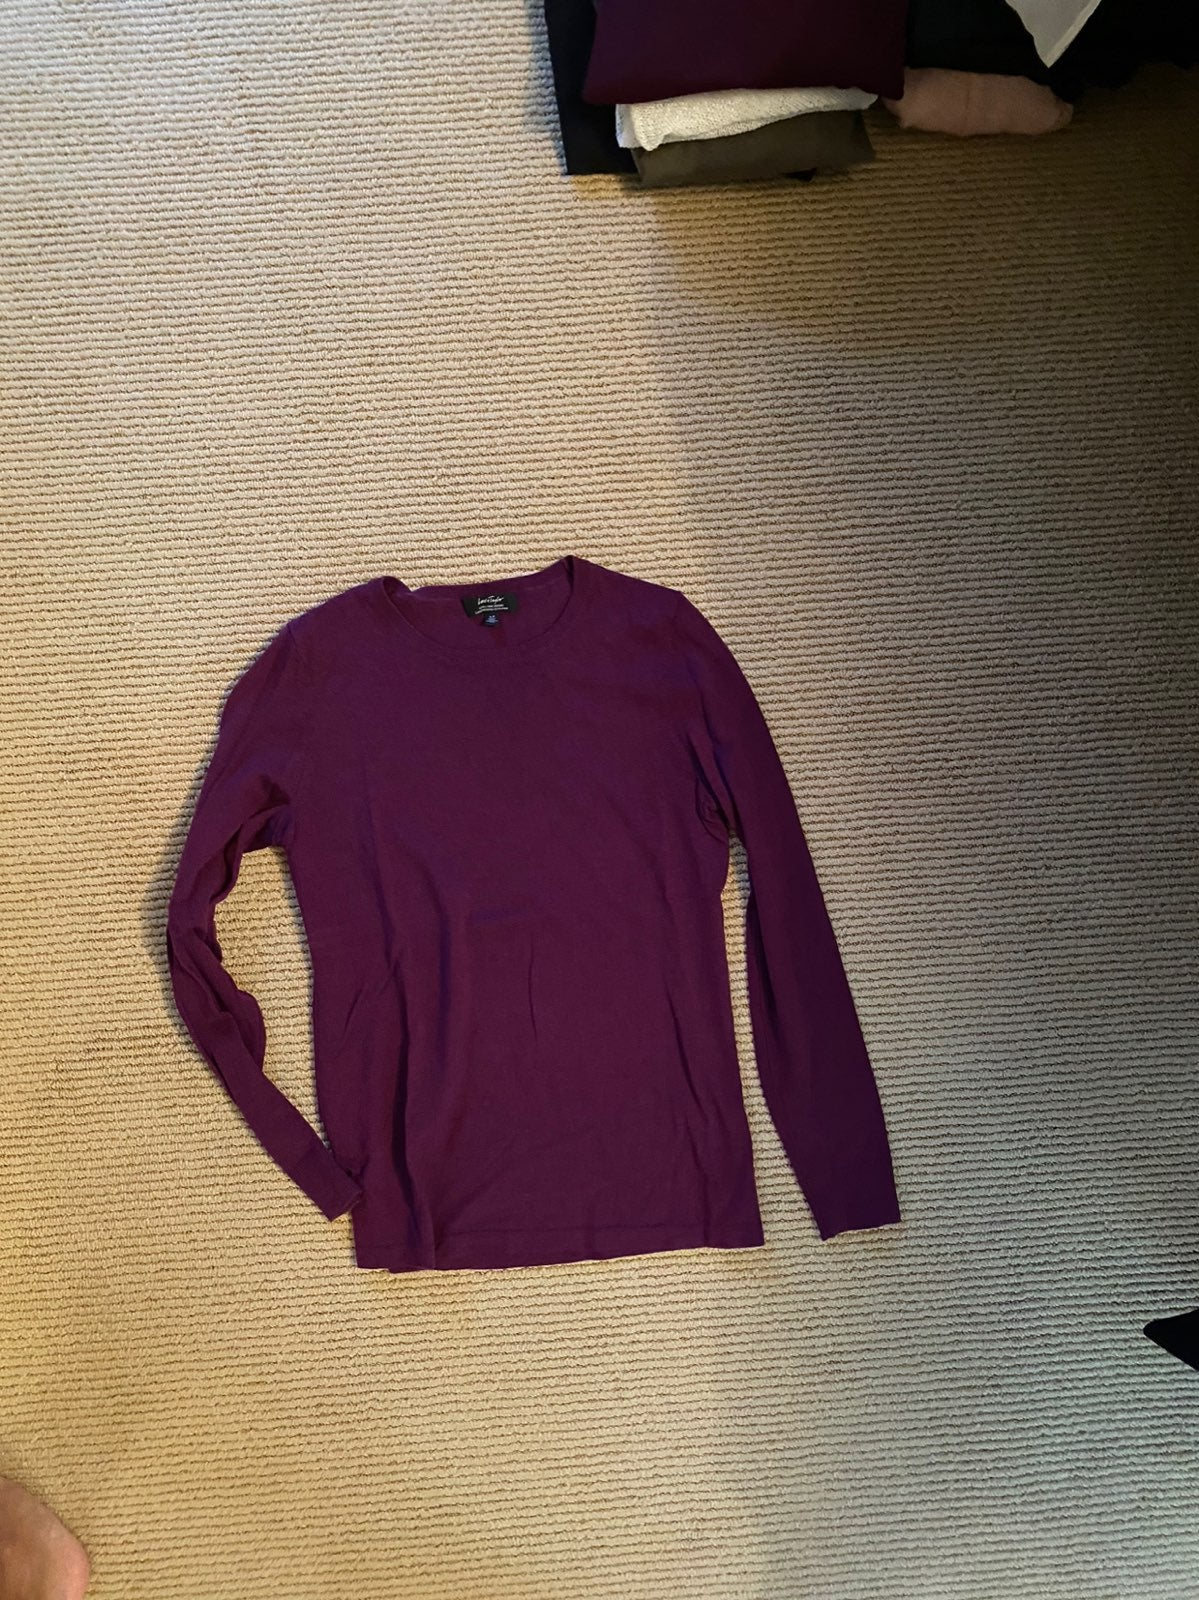 Lord and taylor small sweater